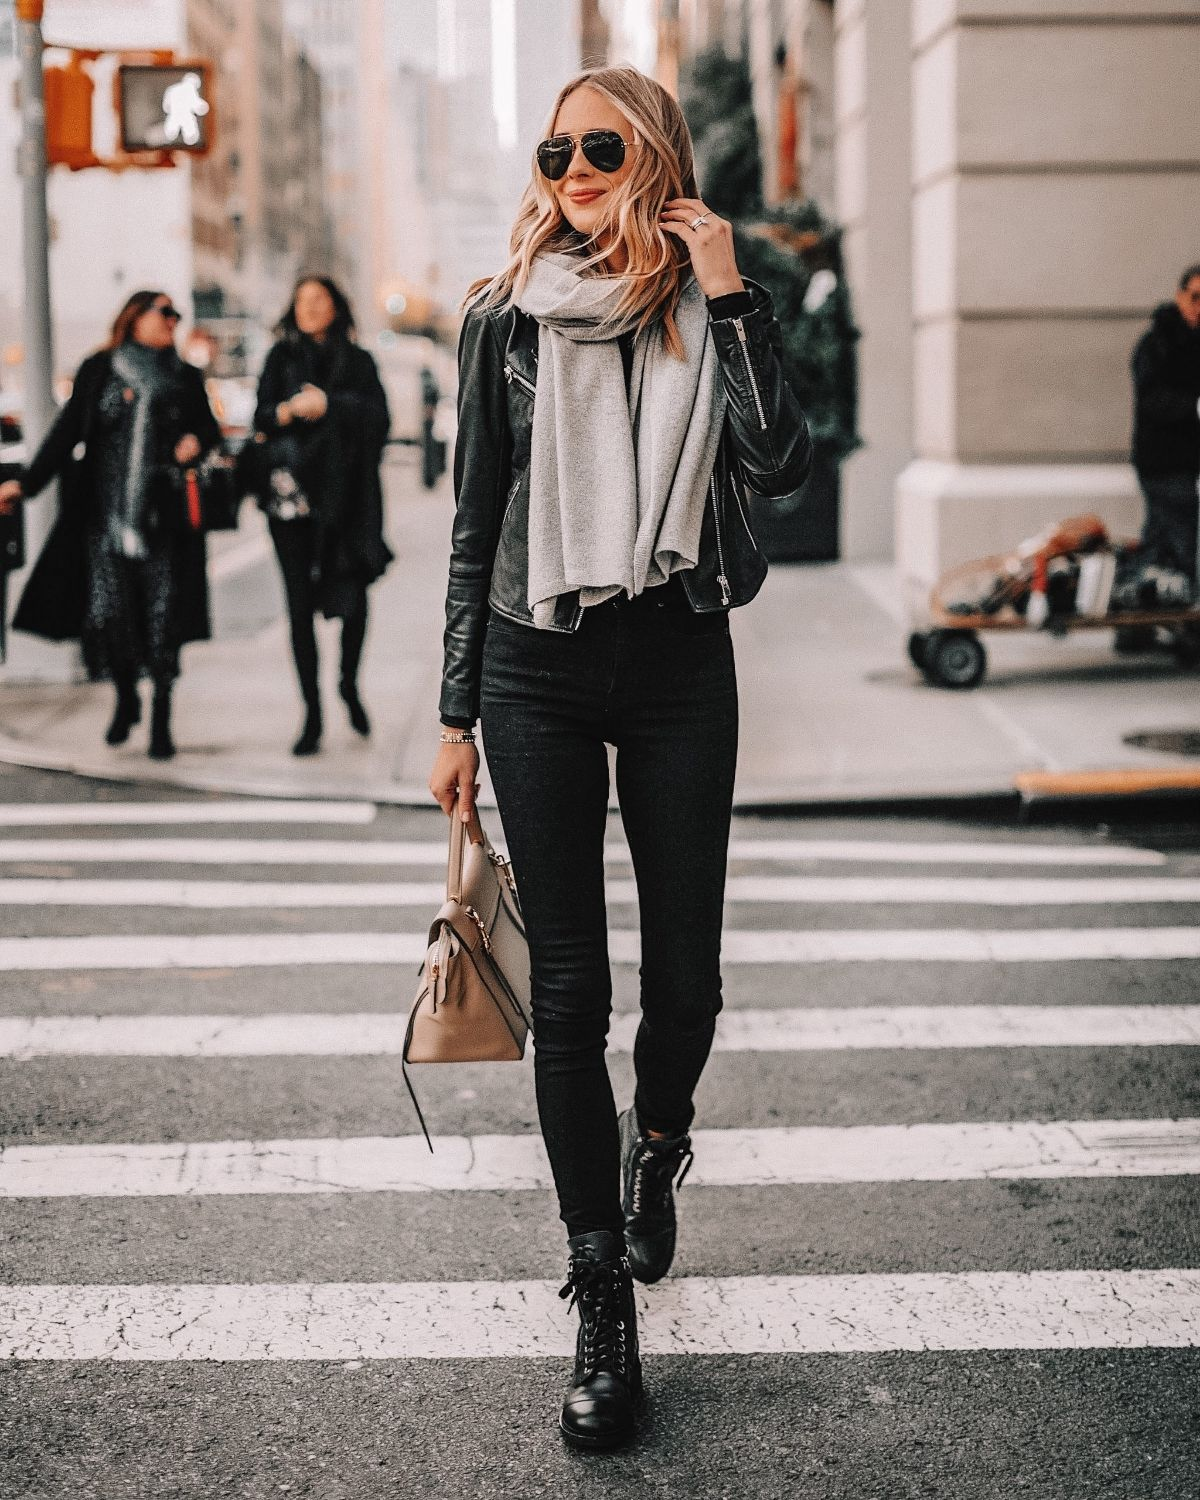 style black jeans with a leather jacket